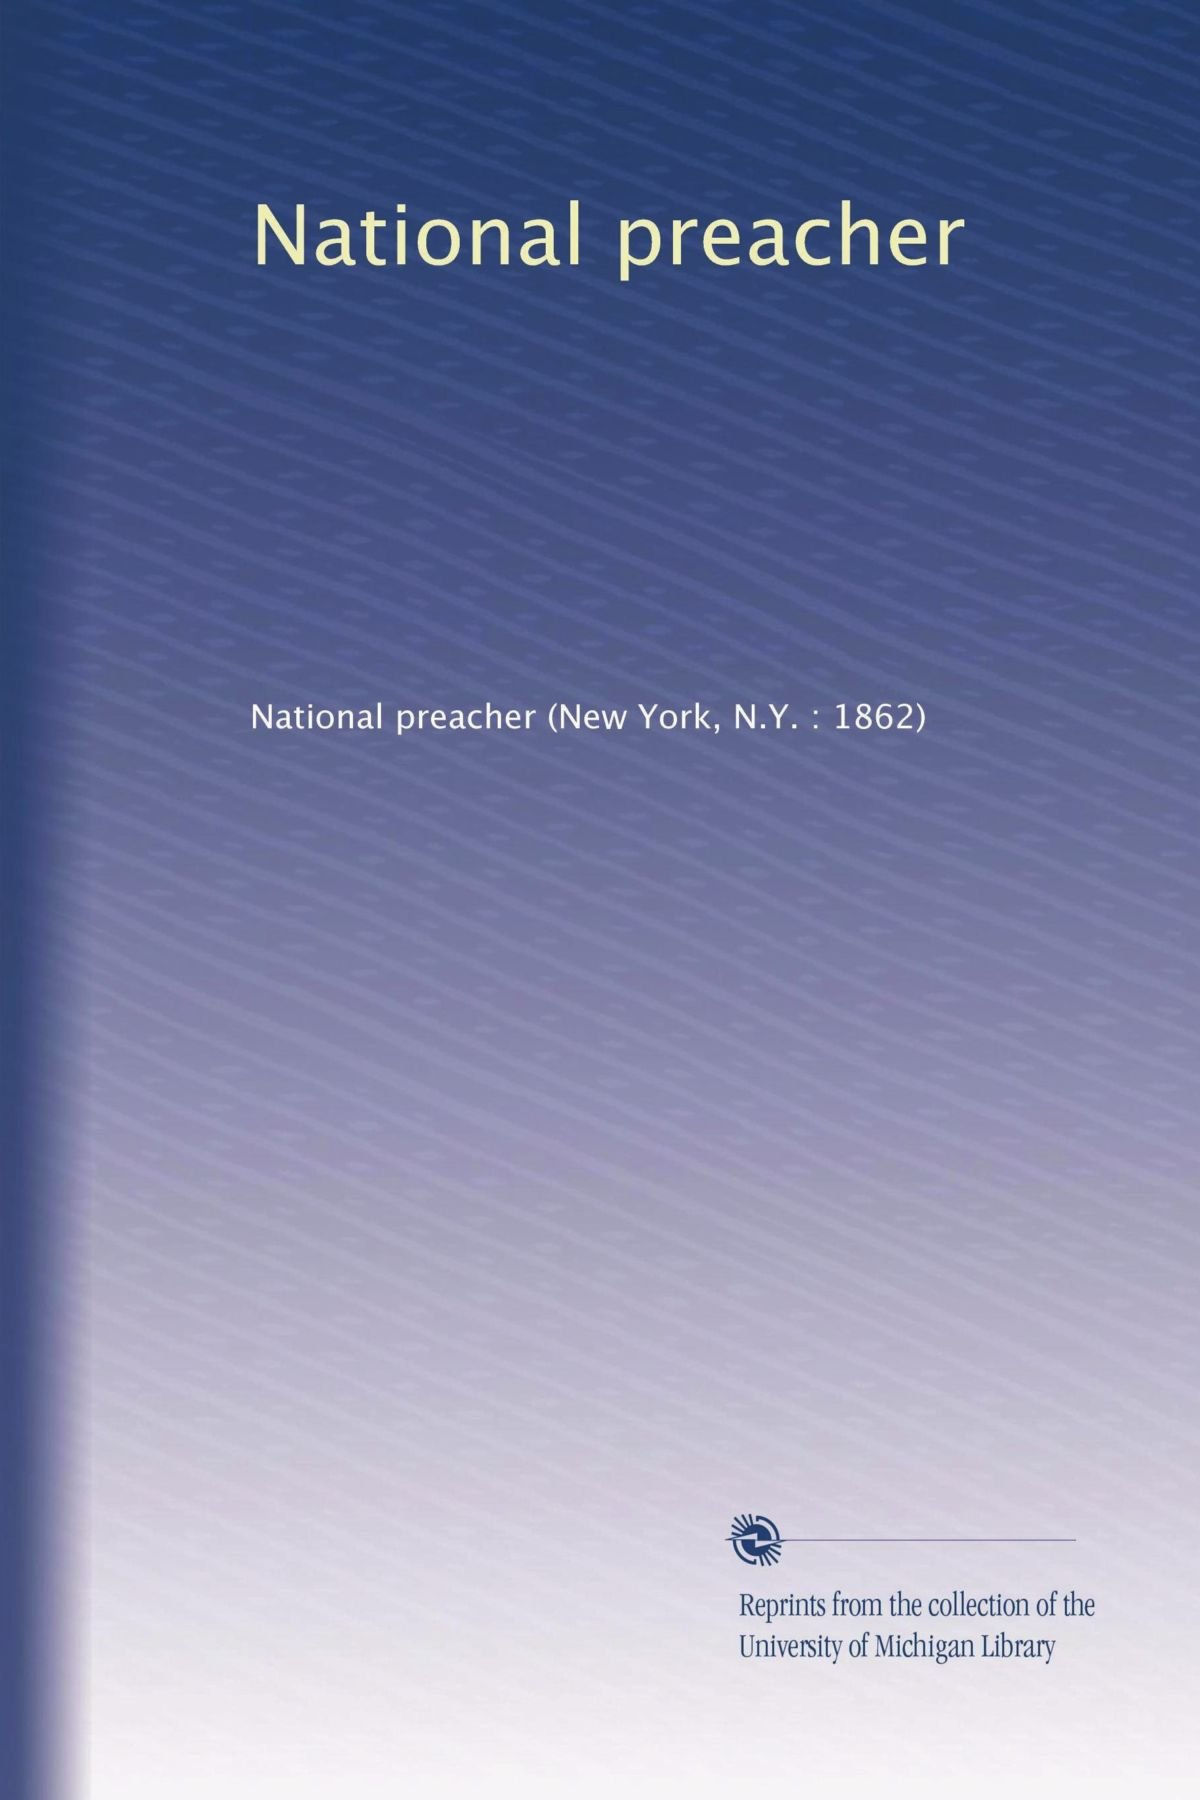 National preacher (Volume 22) PDF